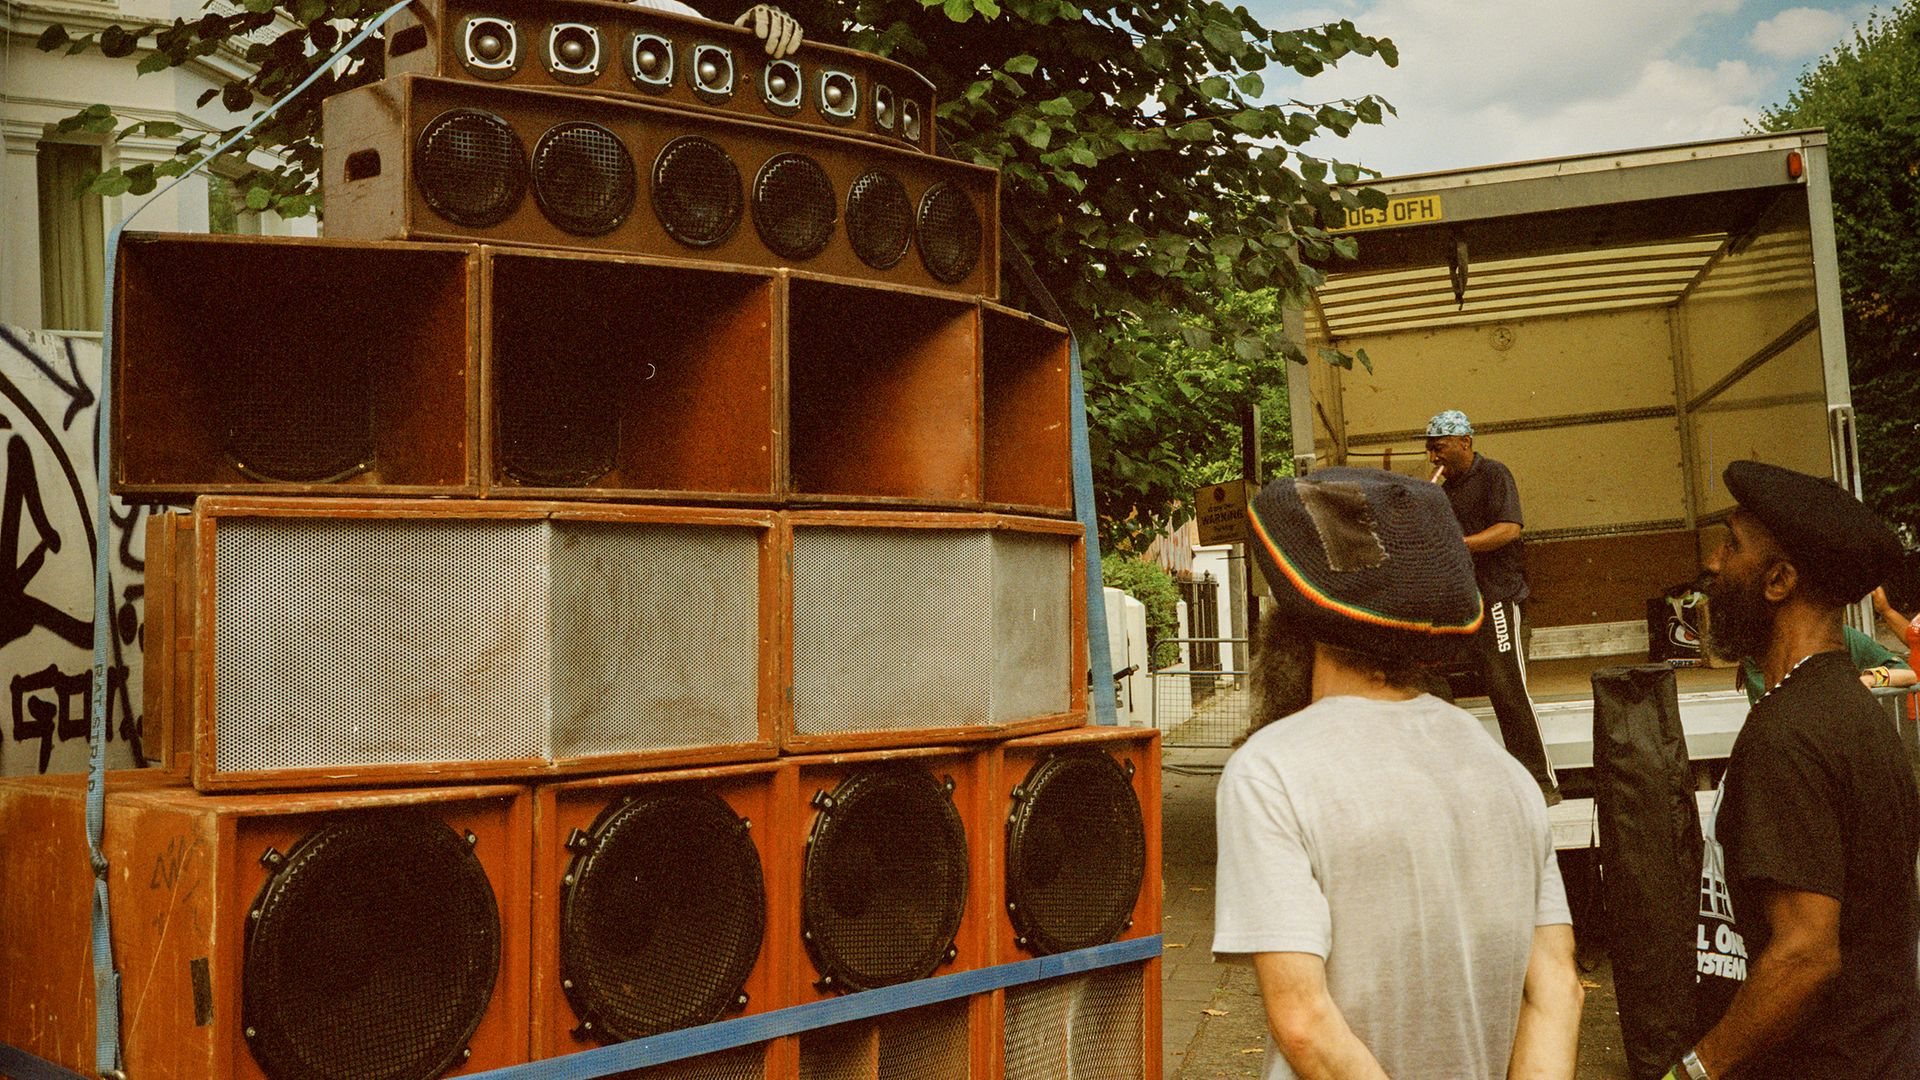 Channel One Sound System at Notting Hill Carnival 2019. - Credit: © Eddie Otchere/Museum of London